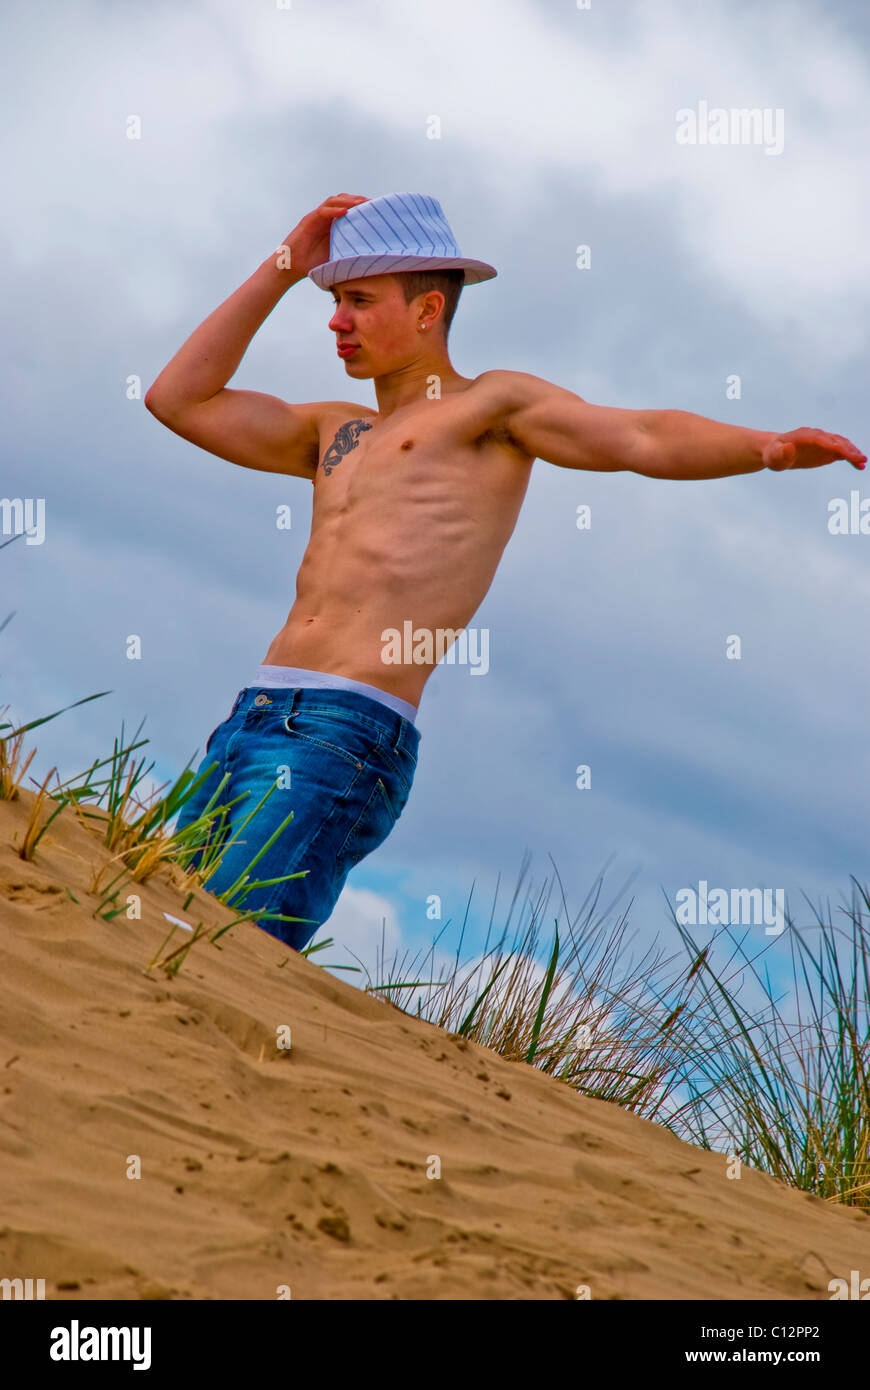 Barechested young man stands with hand on head on a sand dune - Stock Image